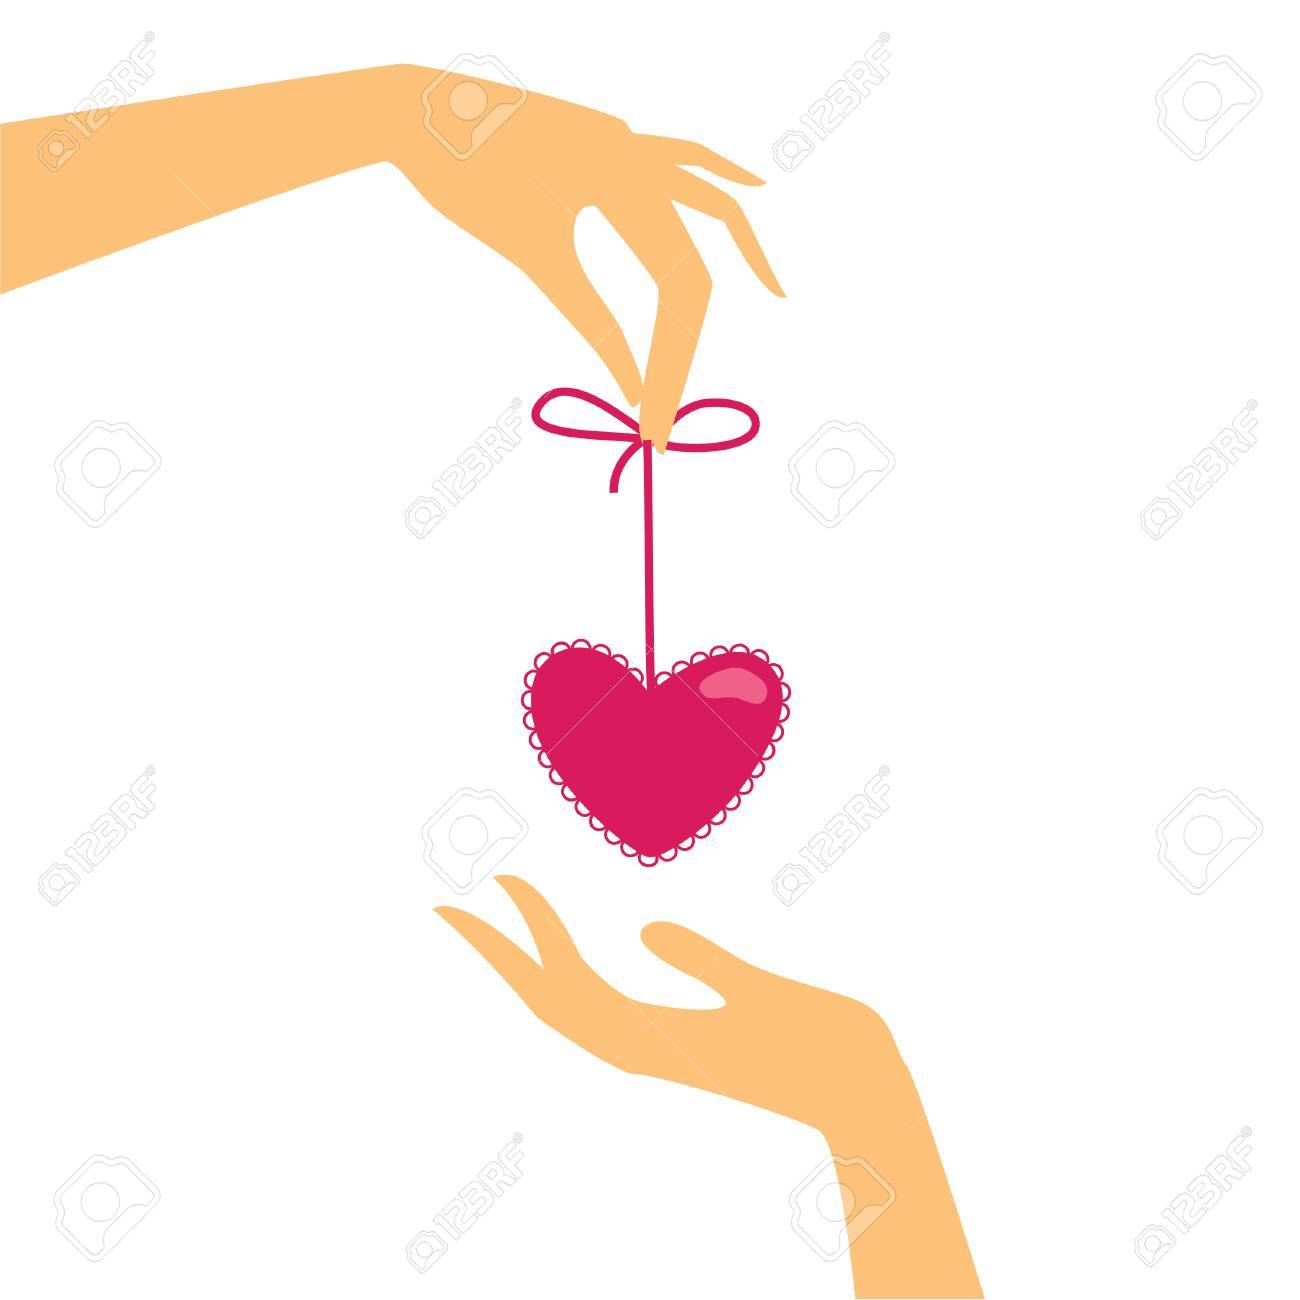 template for the cards with Valentine's Day - Heart Gifts Stock Vector - 8977432